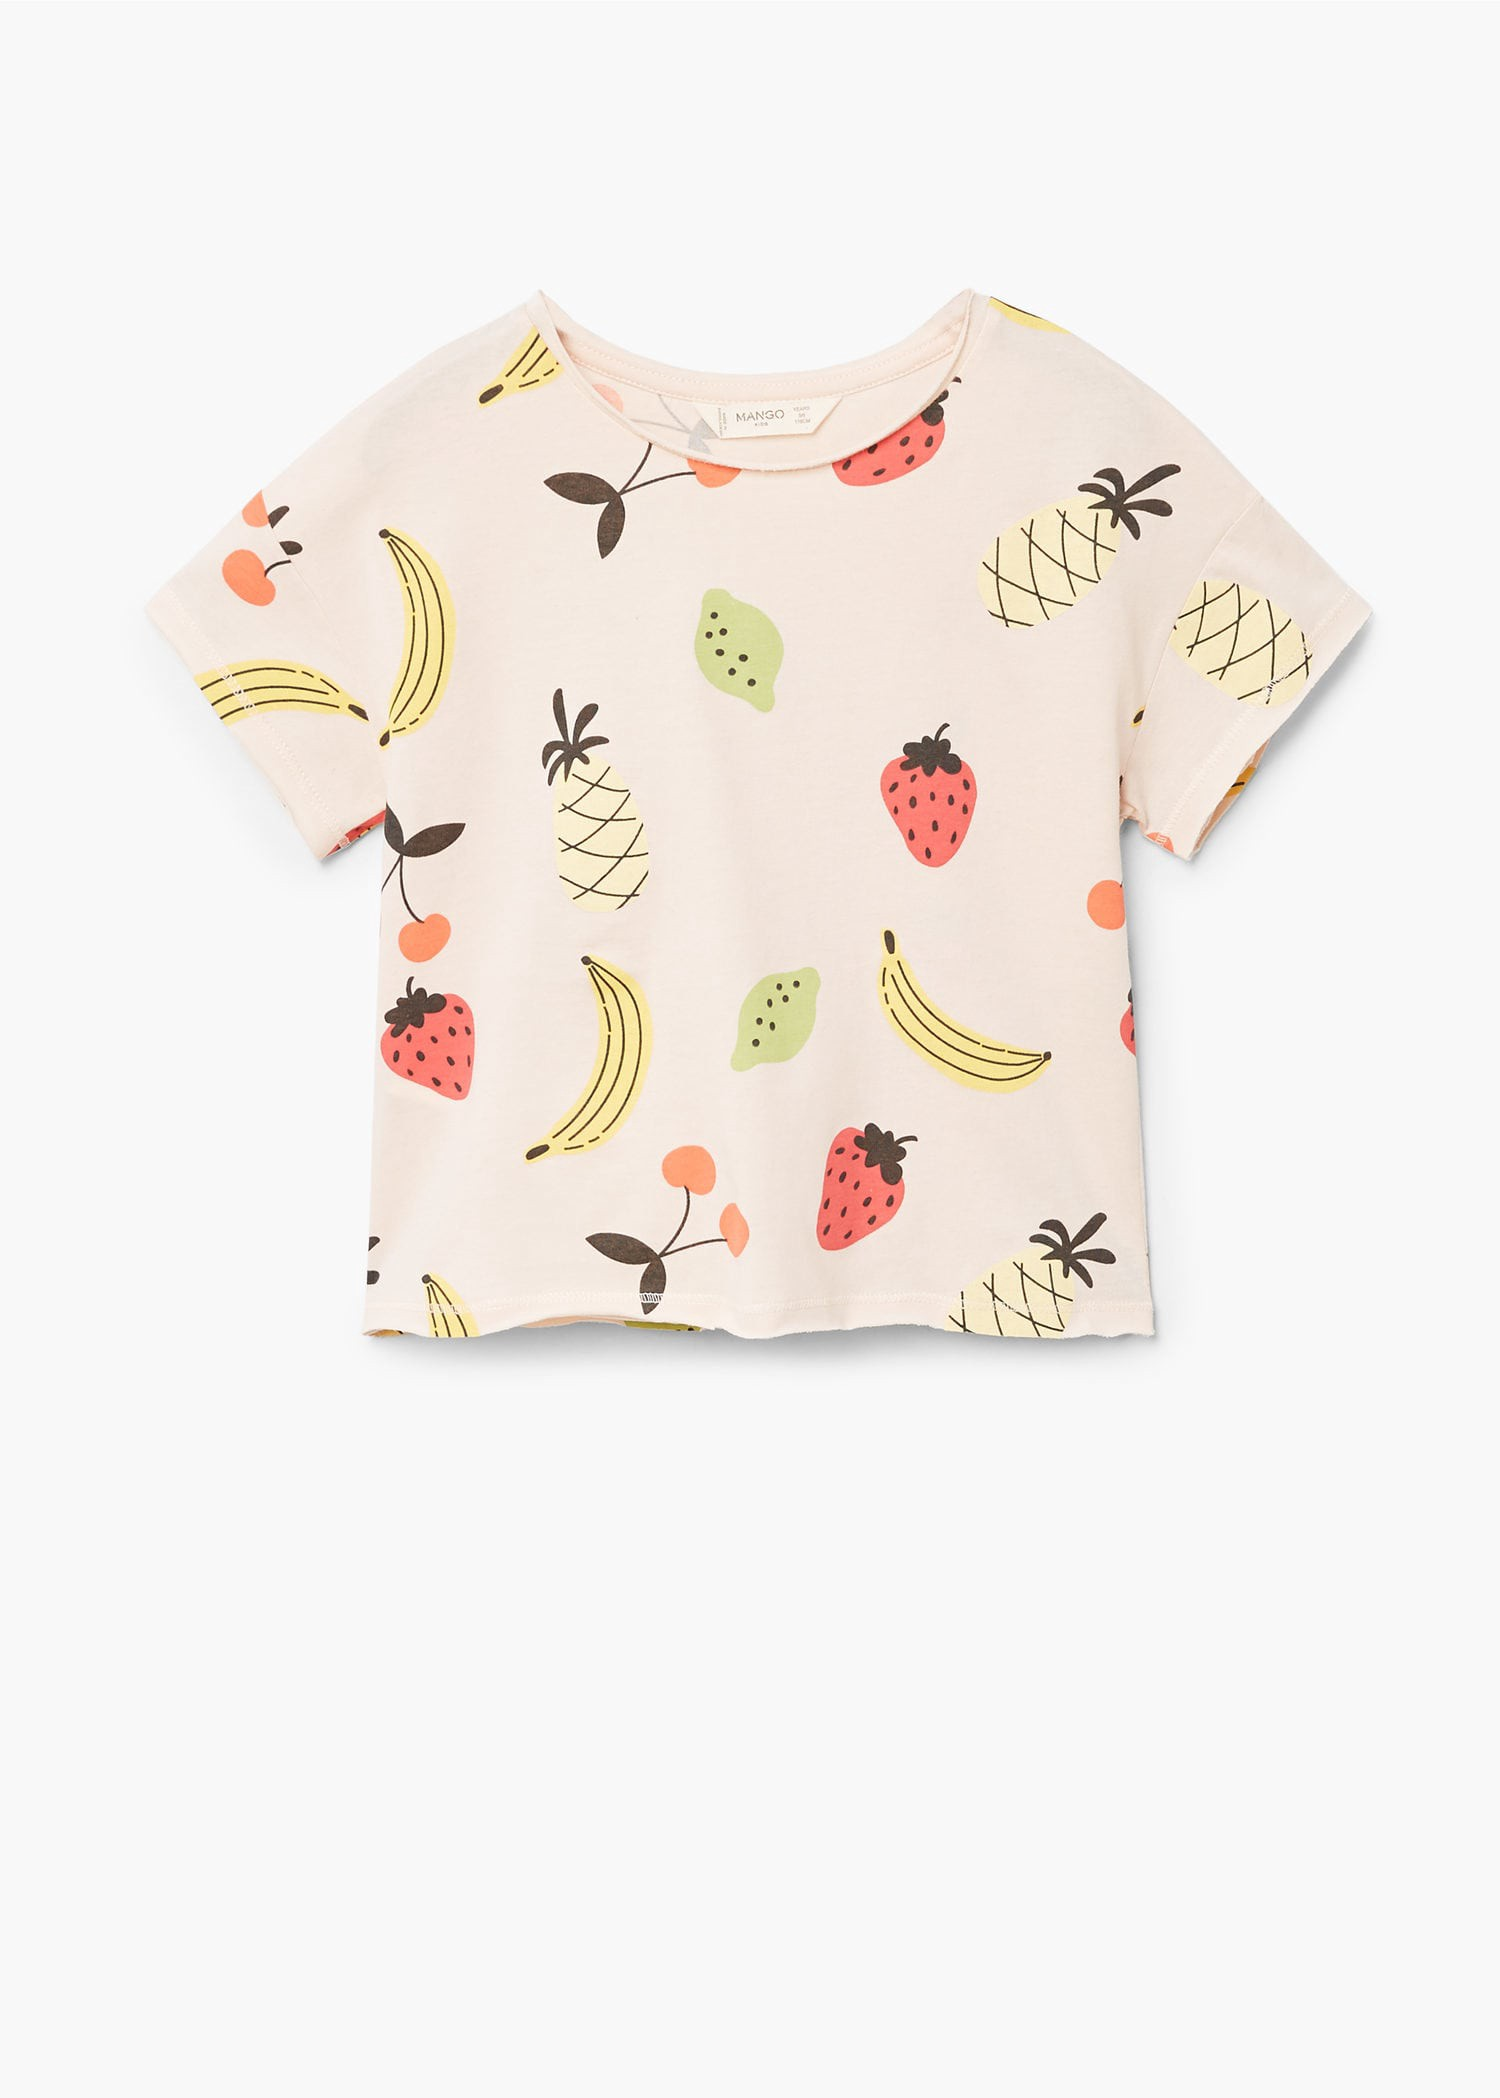 50dcd5b5b Mango Fruit Print T-Shirt - 5-6 Years (116Cm)